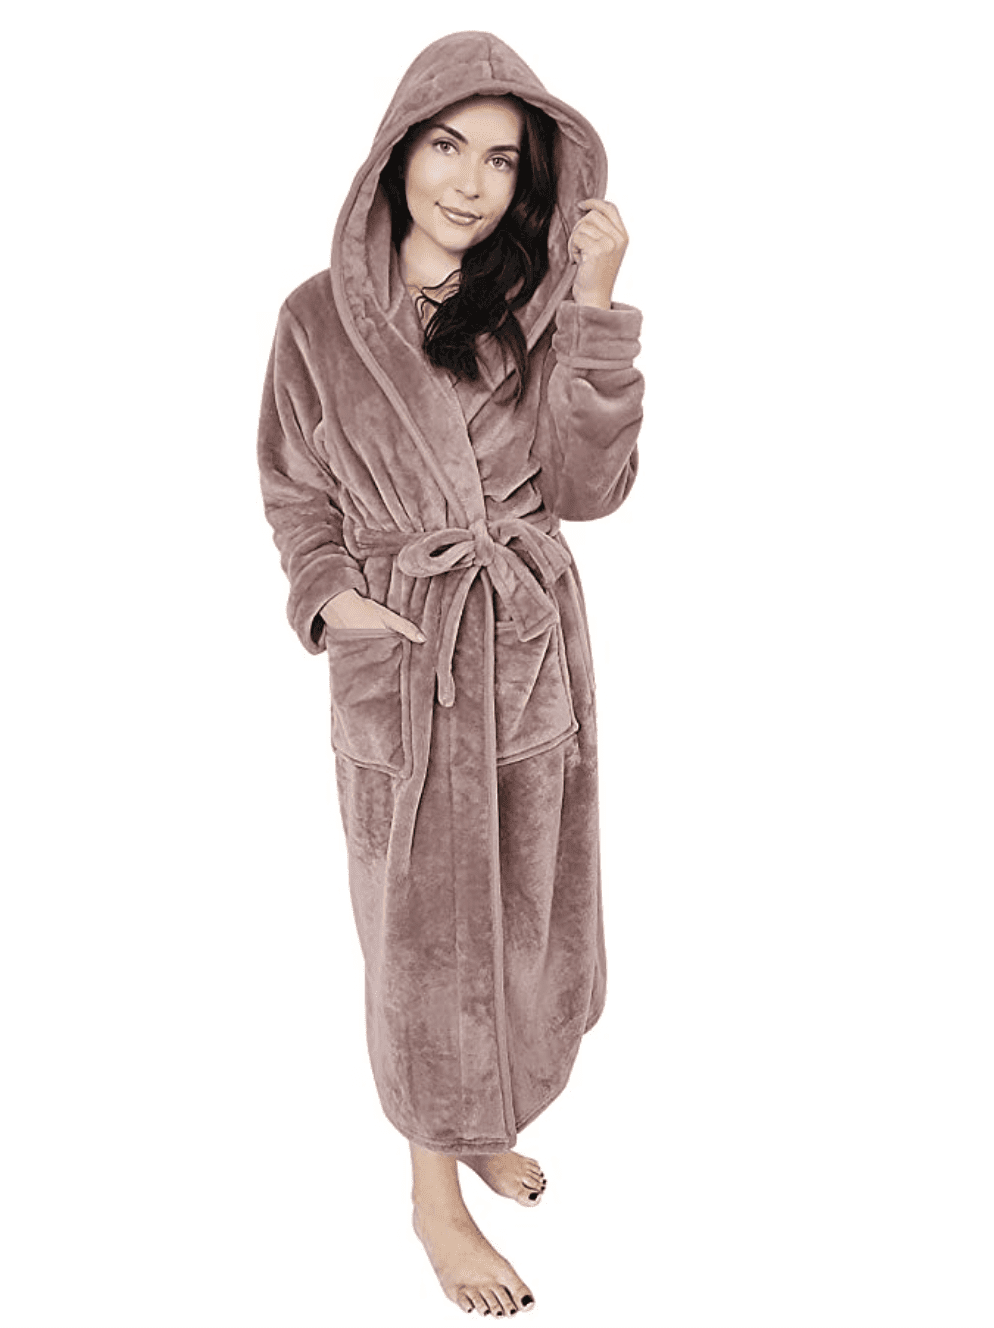 The 11 Best Robes Of 2021